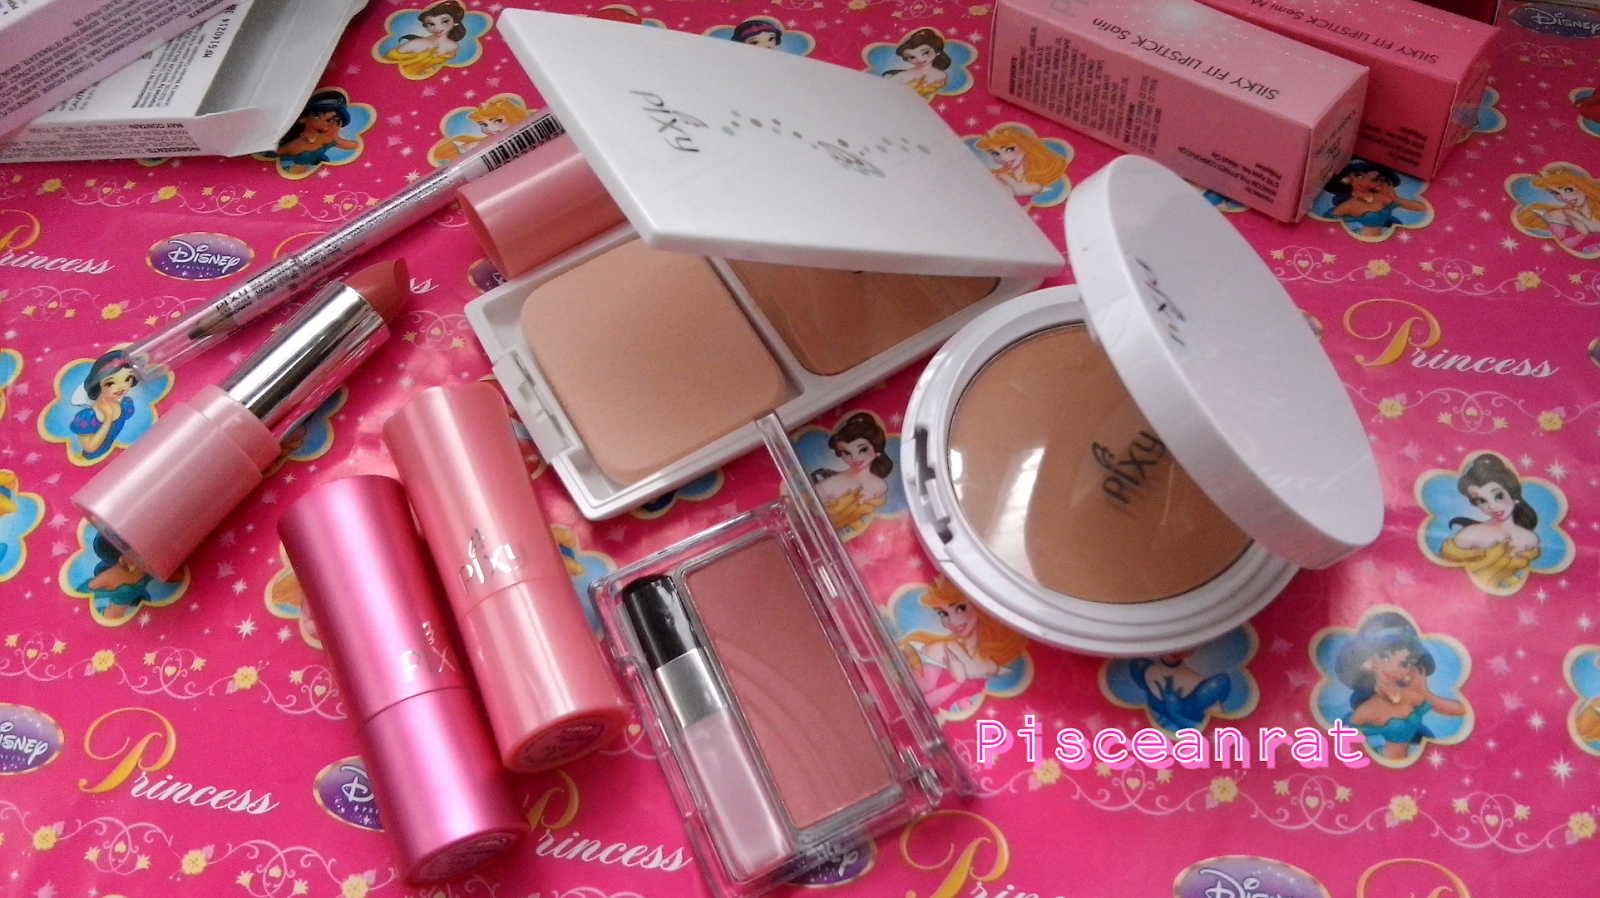 pixy makeup, eye pencil, blush, powder, foundation